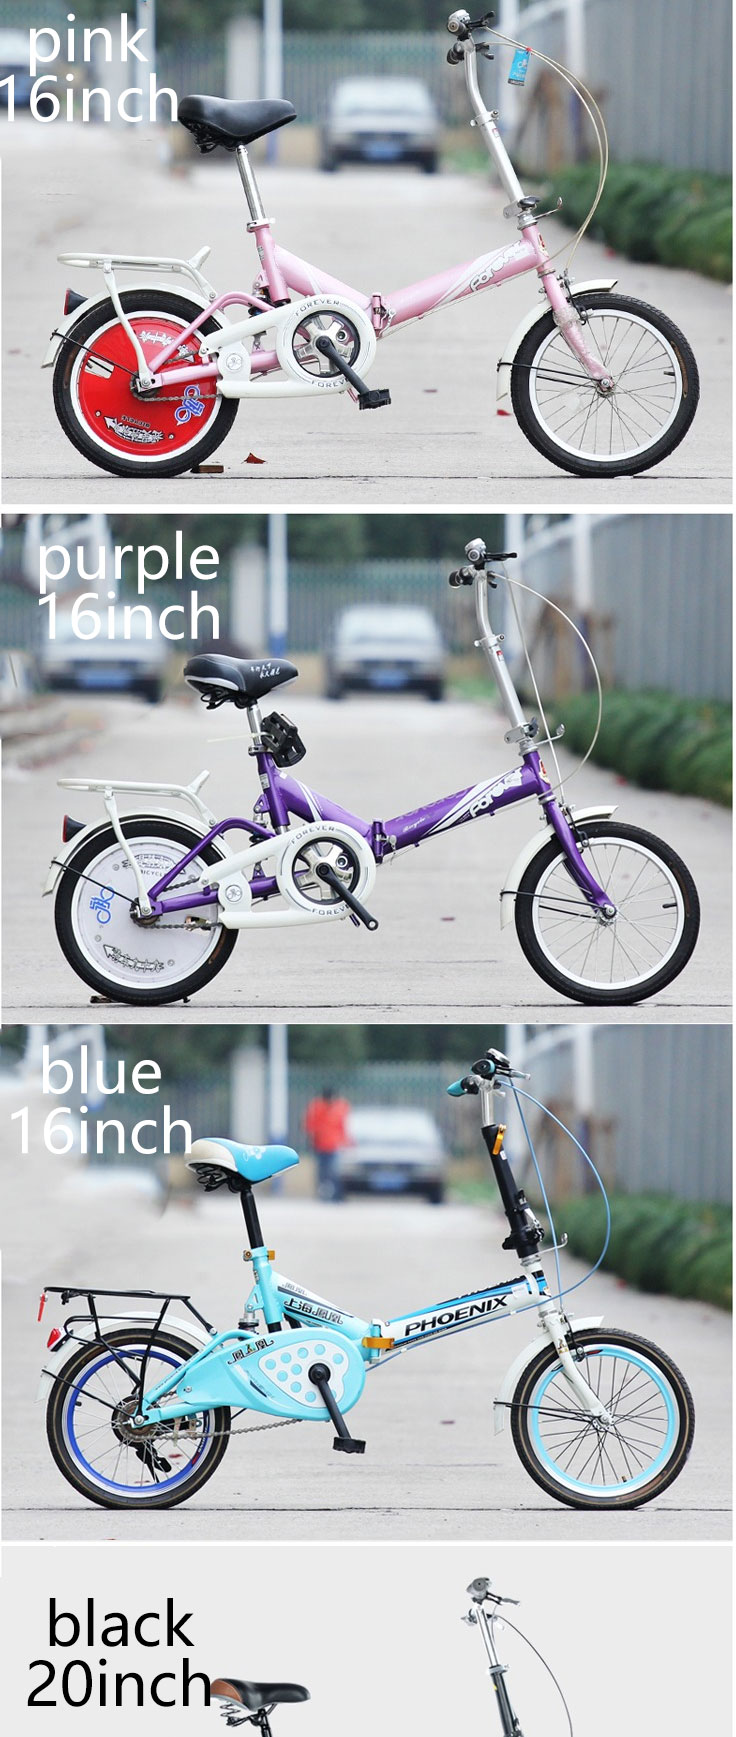 H3877241b22034ffc95b31523e5f40379b [TB01]20 inch folding bicycle bicycle shock absorber bicycle men and women student car leisure bicycle